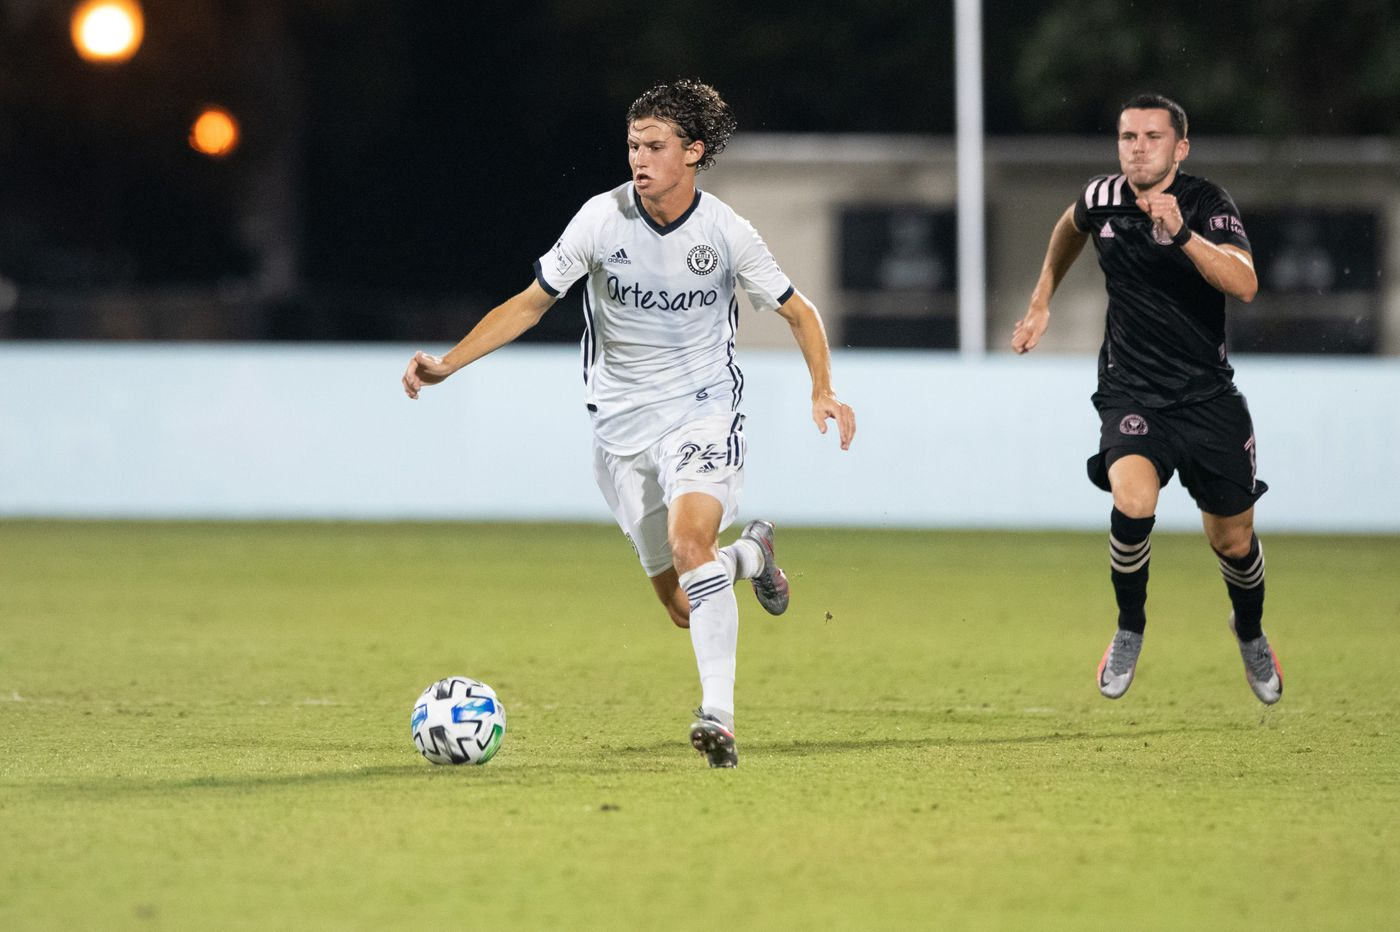 Union not satisfied with win over Inter Miami despite the entertaining goals